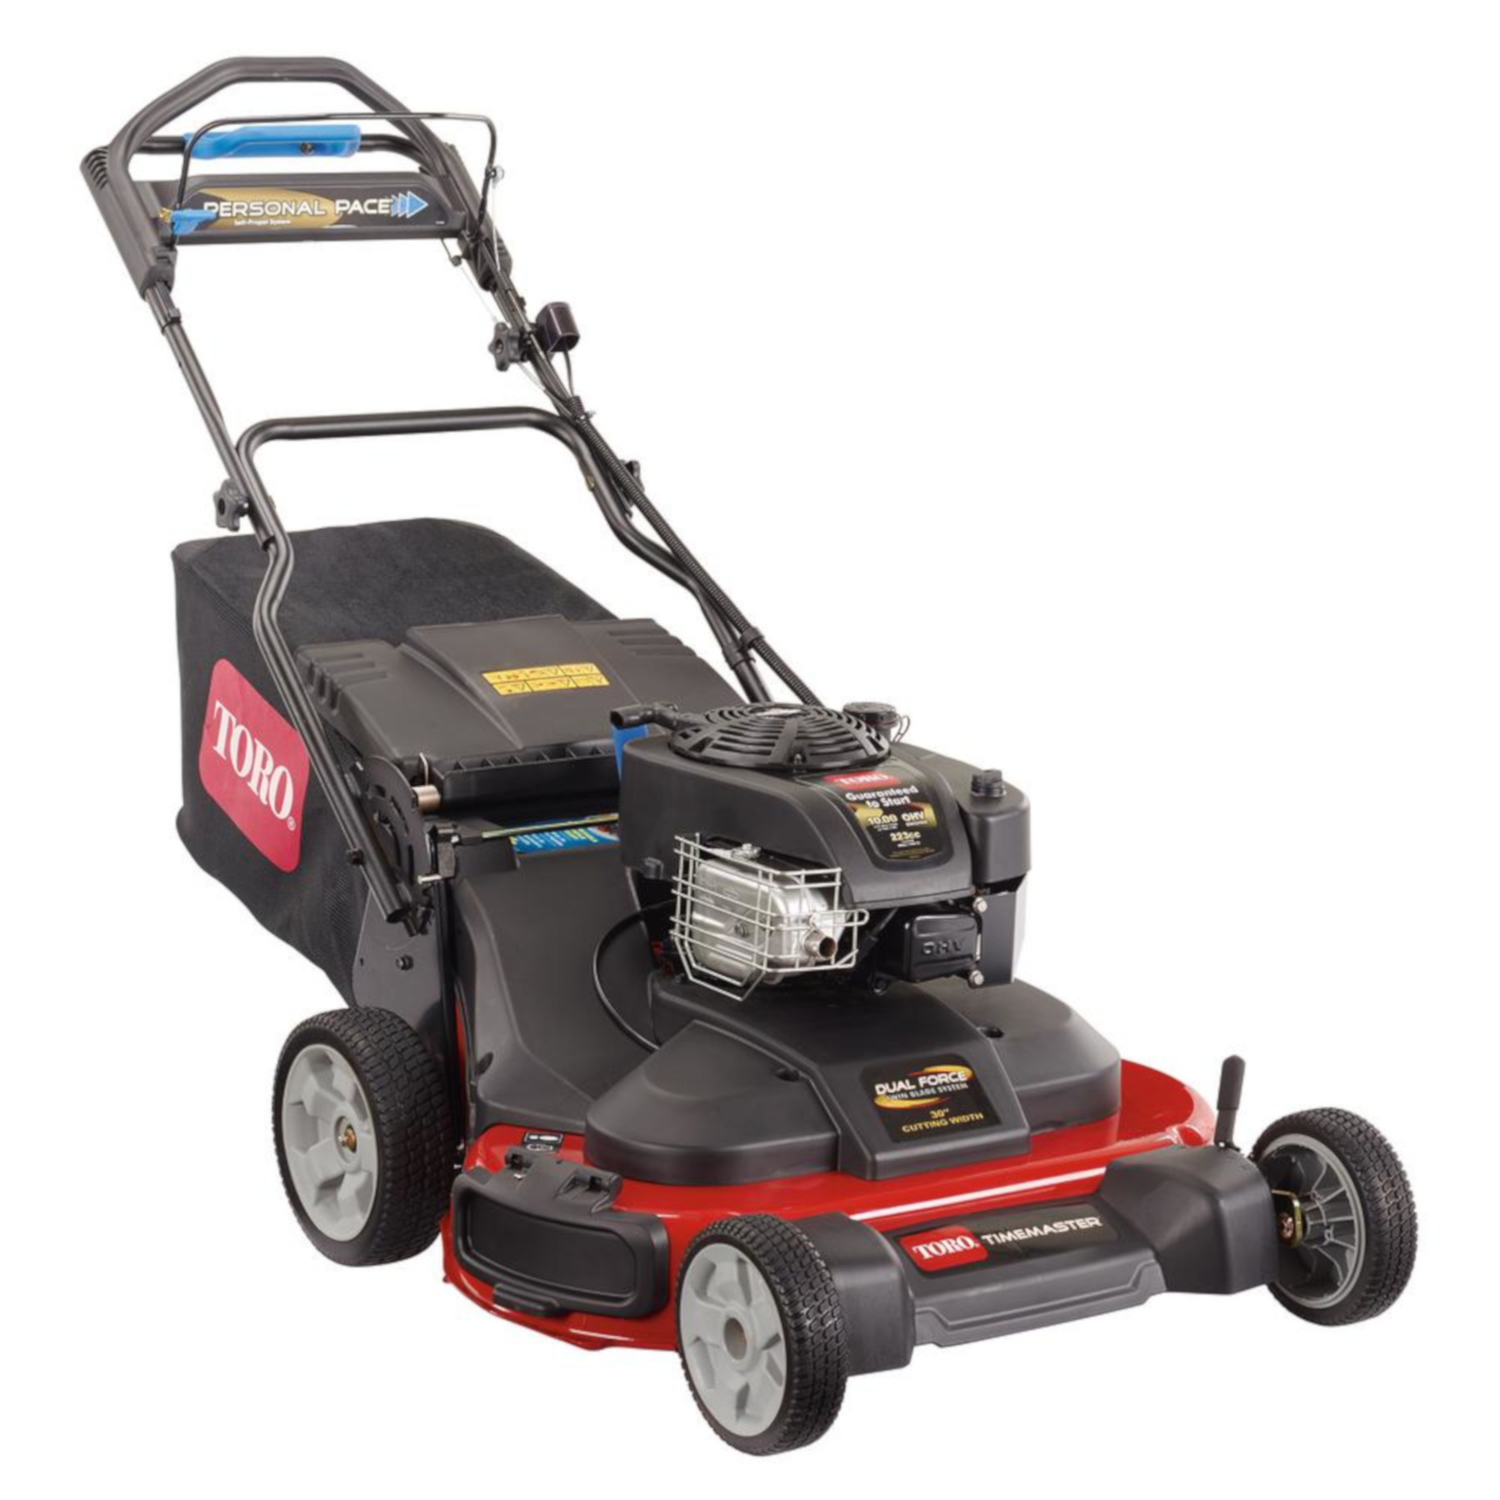 toro personal pace timemaster 30 in w 223 cc self propelled rh p acehardware com toro personal pace repair manual toro lawn mower personal pace manuals